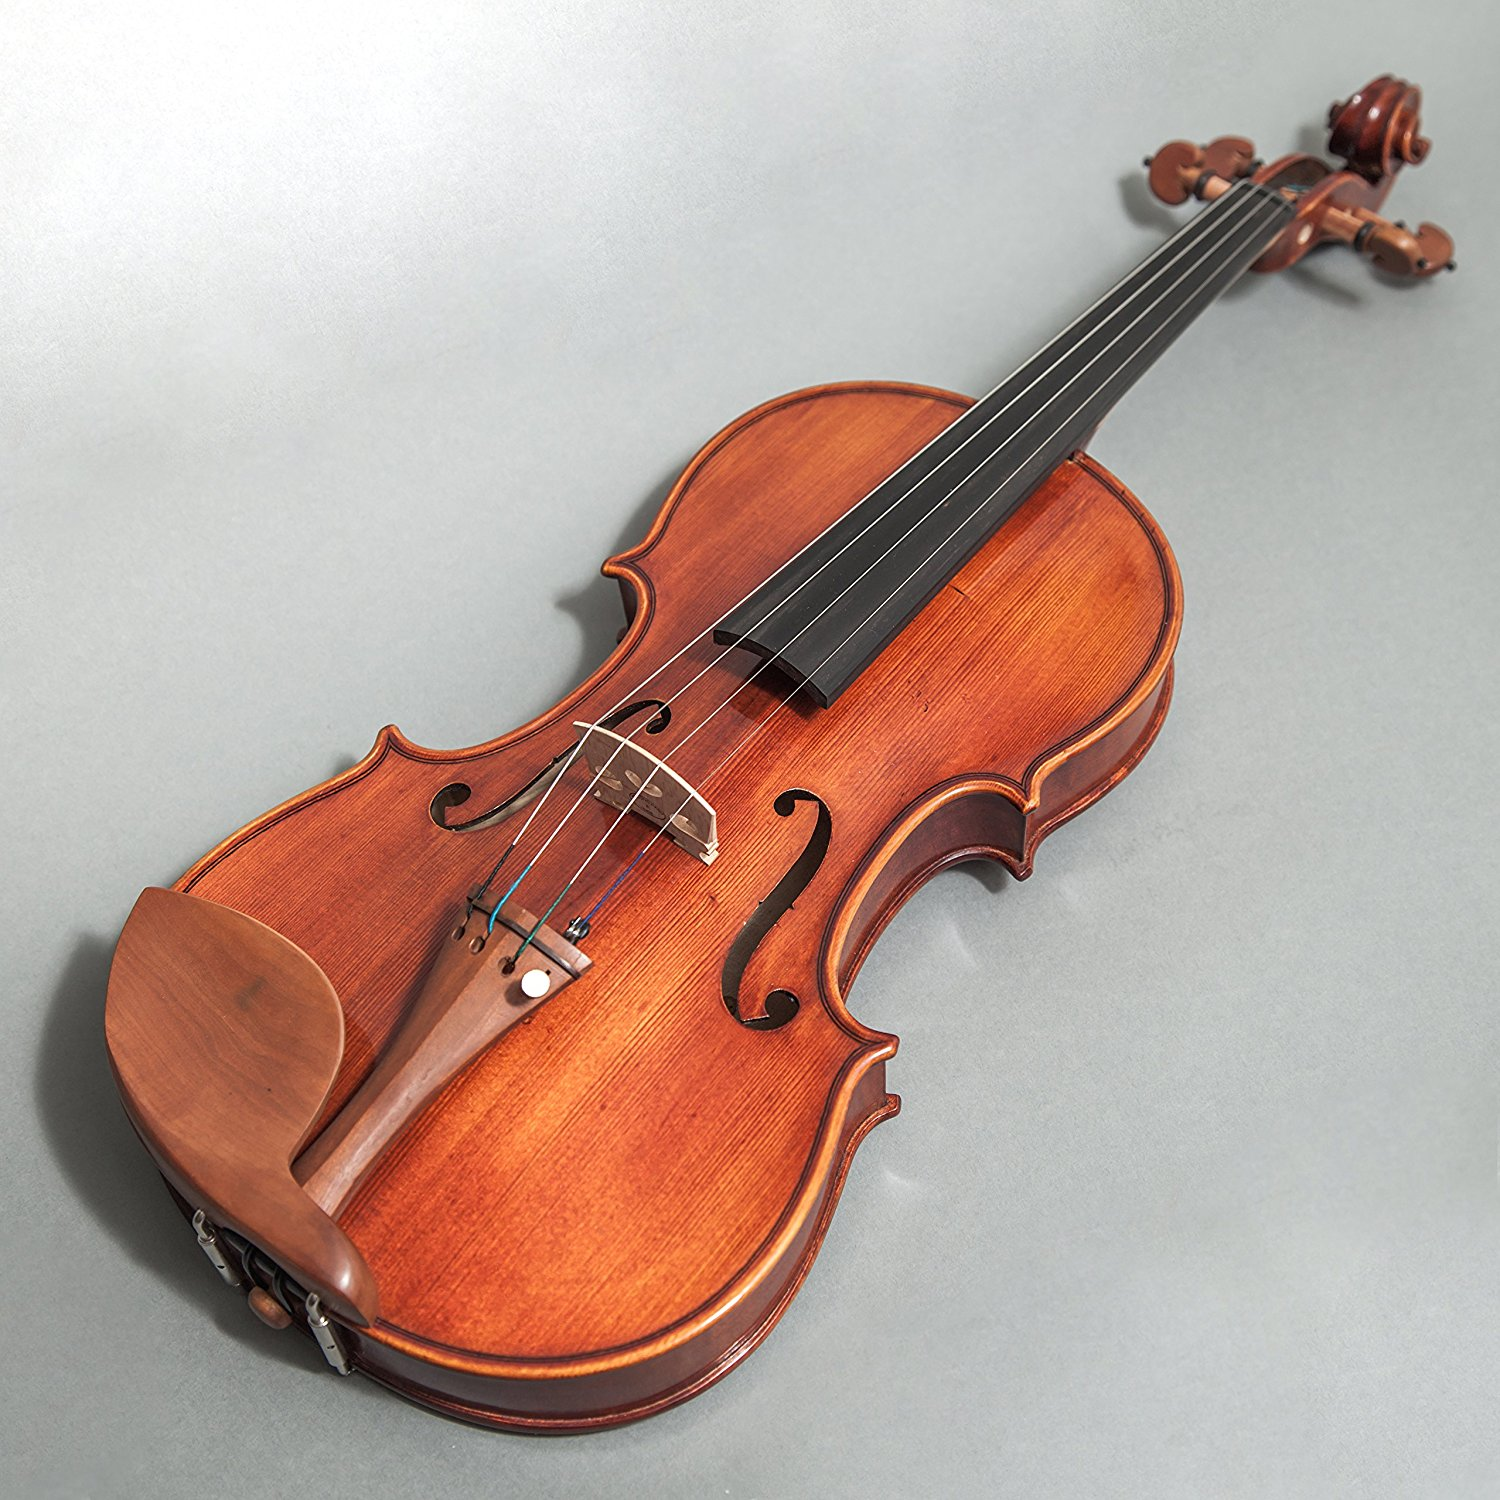 Sky FL001-JB-C350 Hand Made Professional 4/4 Full Size Violin Jujube Wood Fitted Highly Flammed